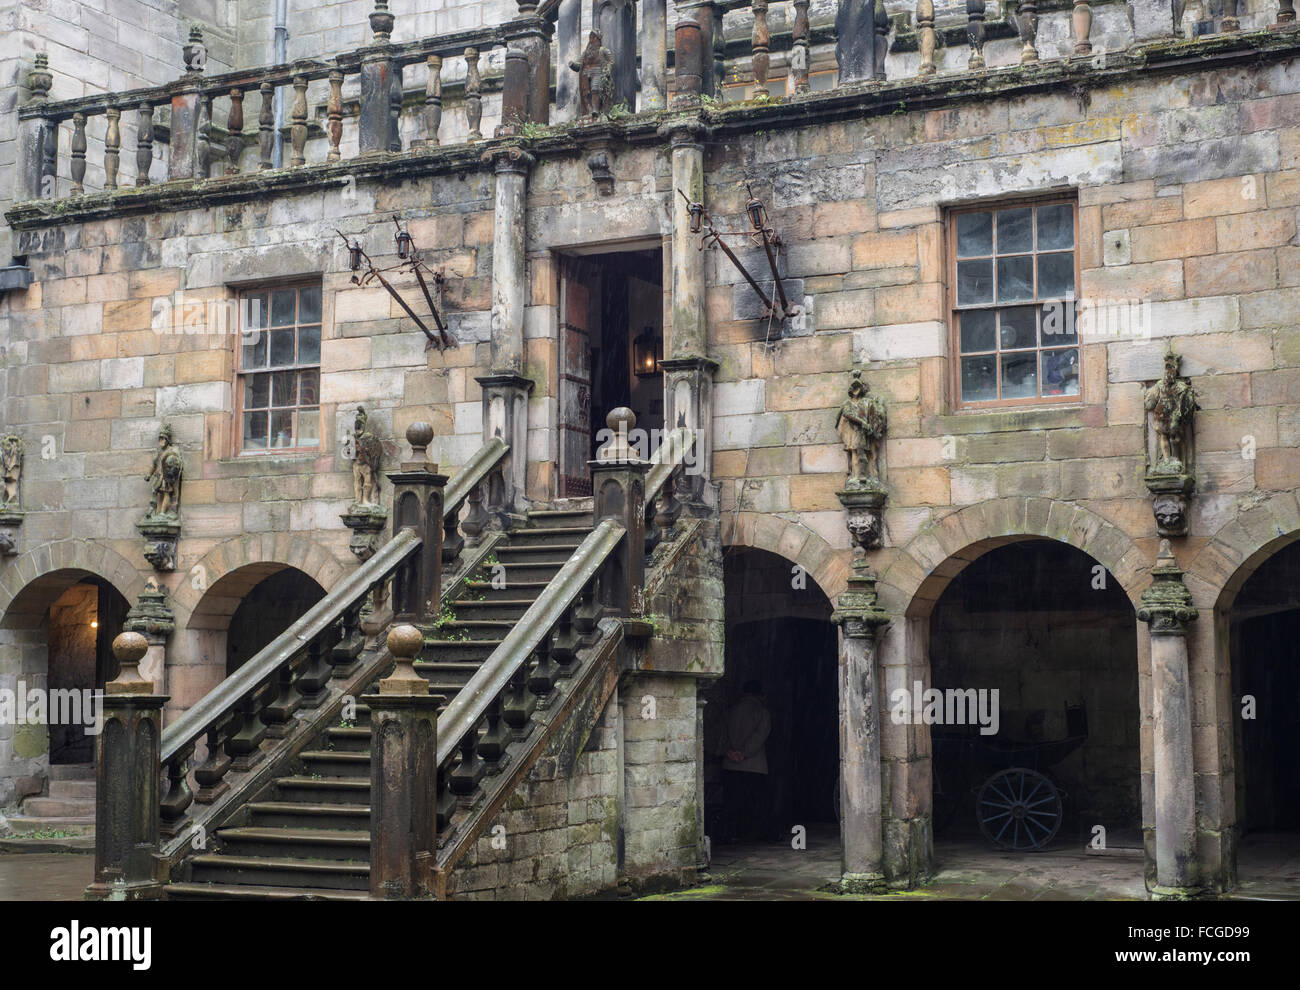 Exterior of Chillingham Castle, Northumberland, reputedly the most haunted castle in England - Stock Image